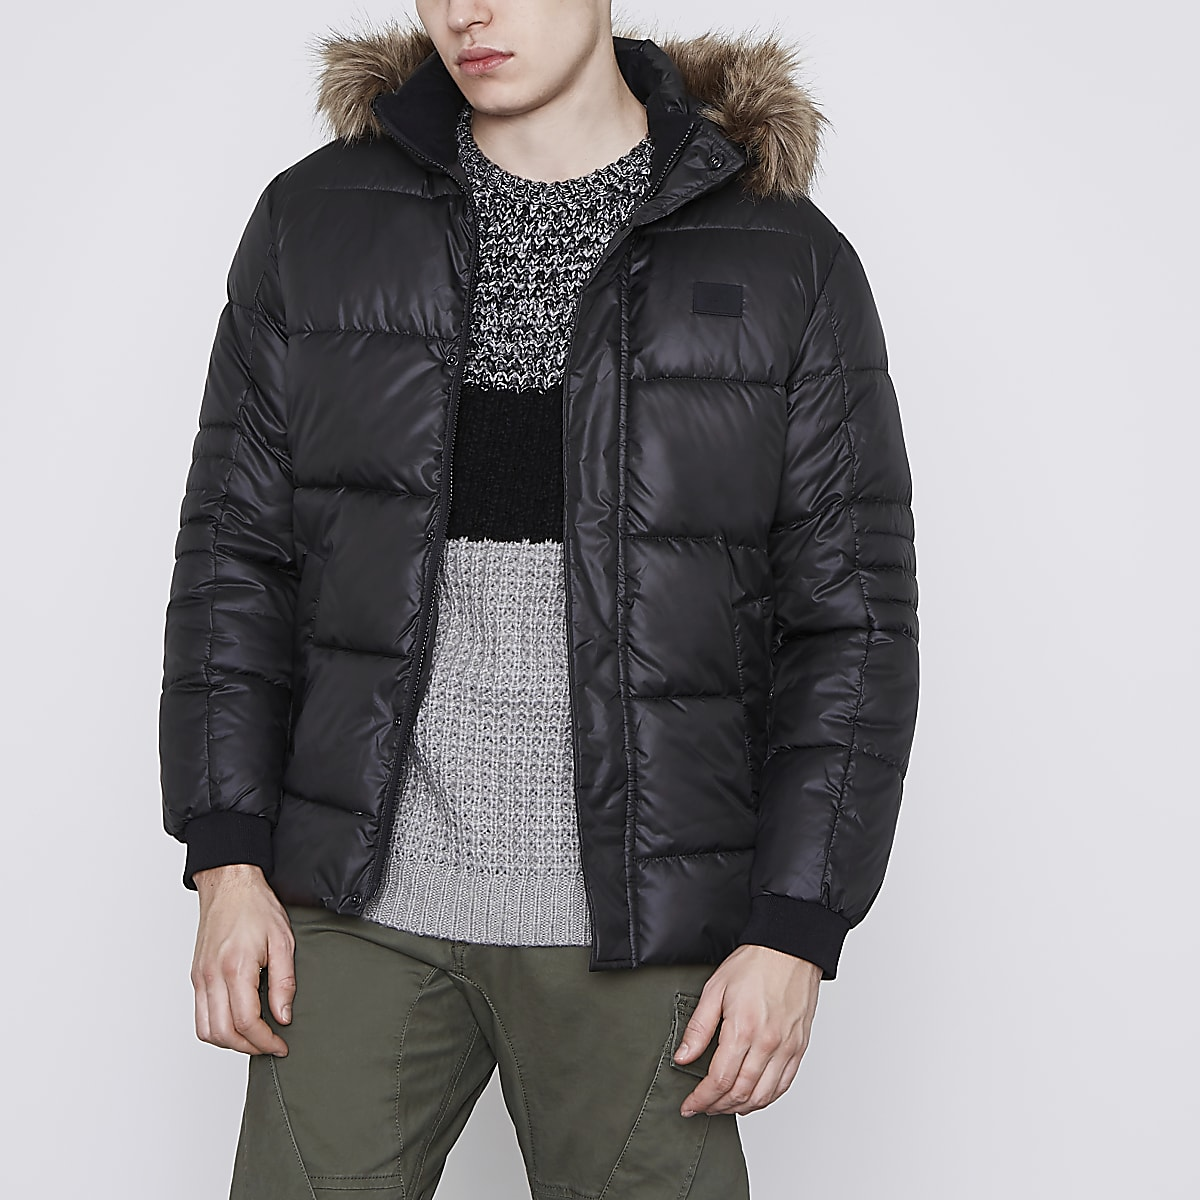 Jack & Jones Core black puffer jacket